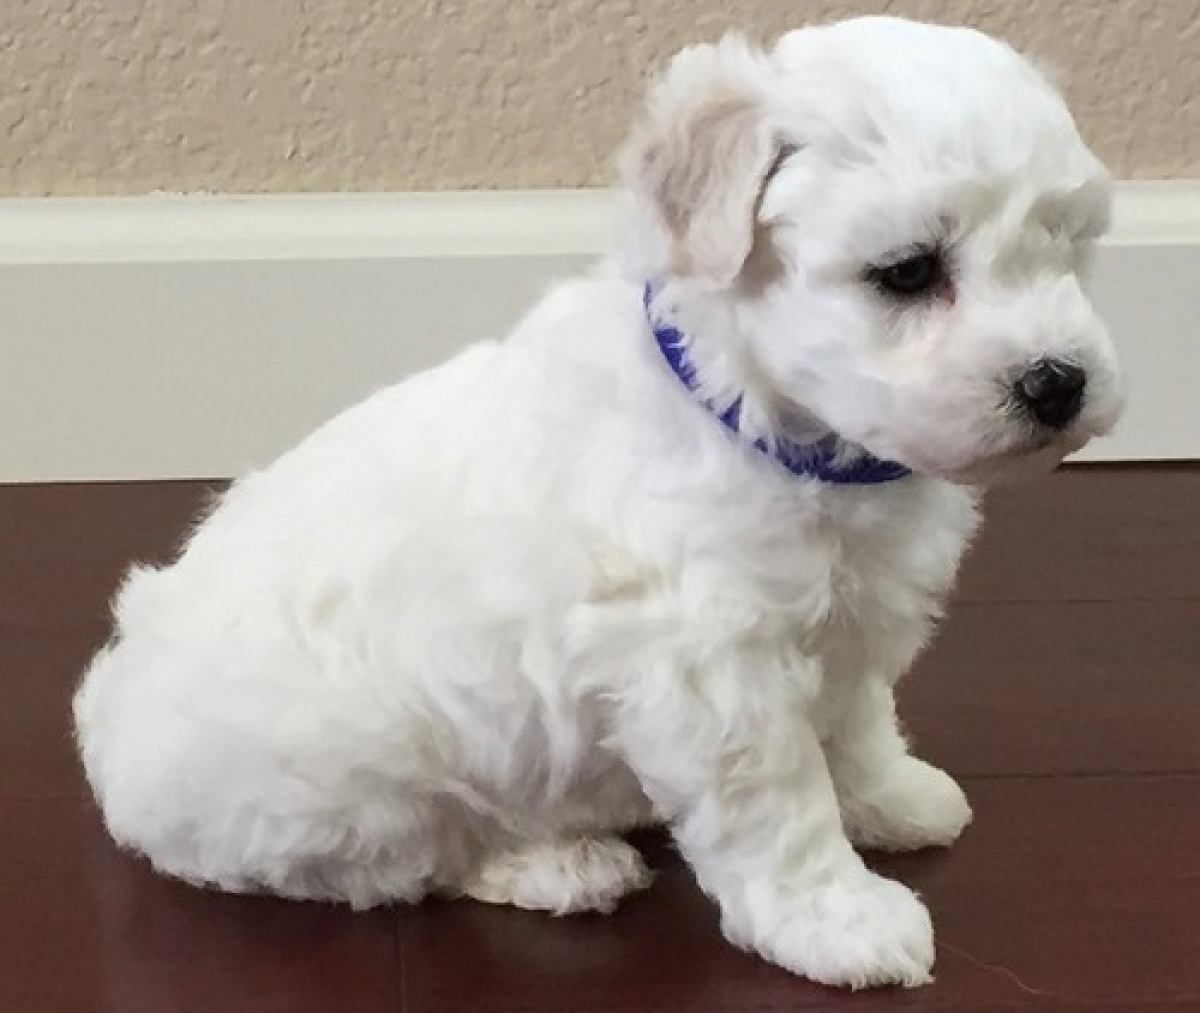 Bichon Frise puppies for sale - Dogs & Puppies - Florida - Free